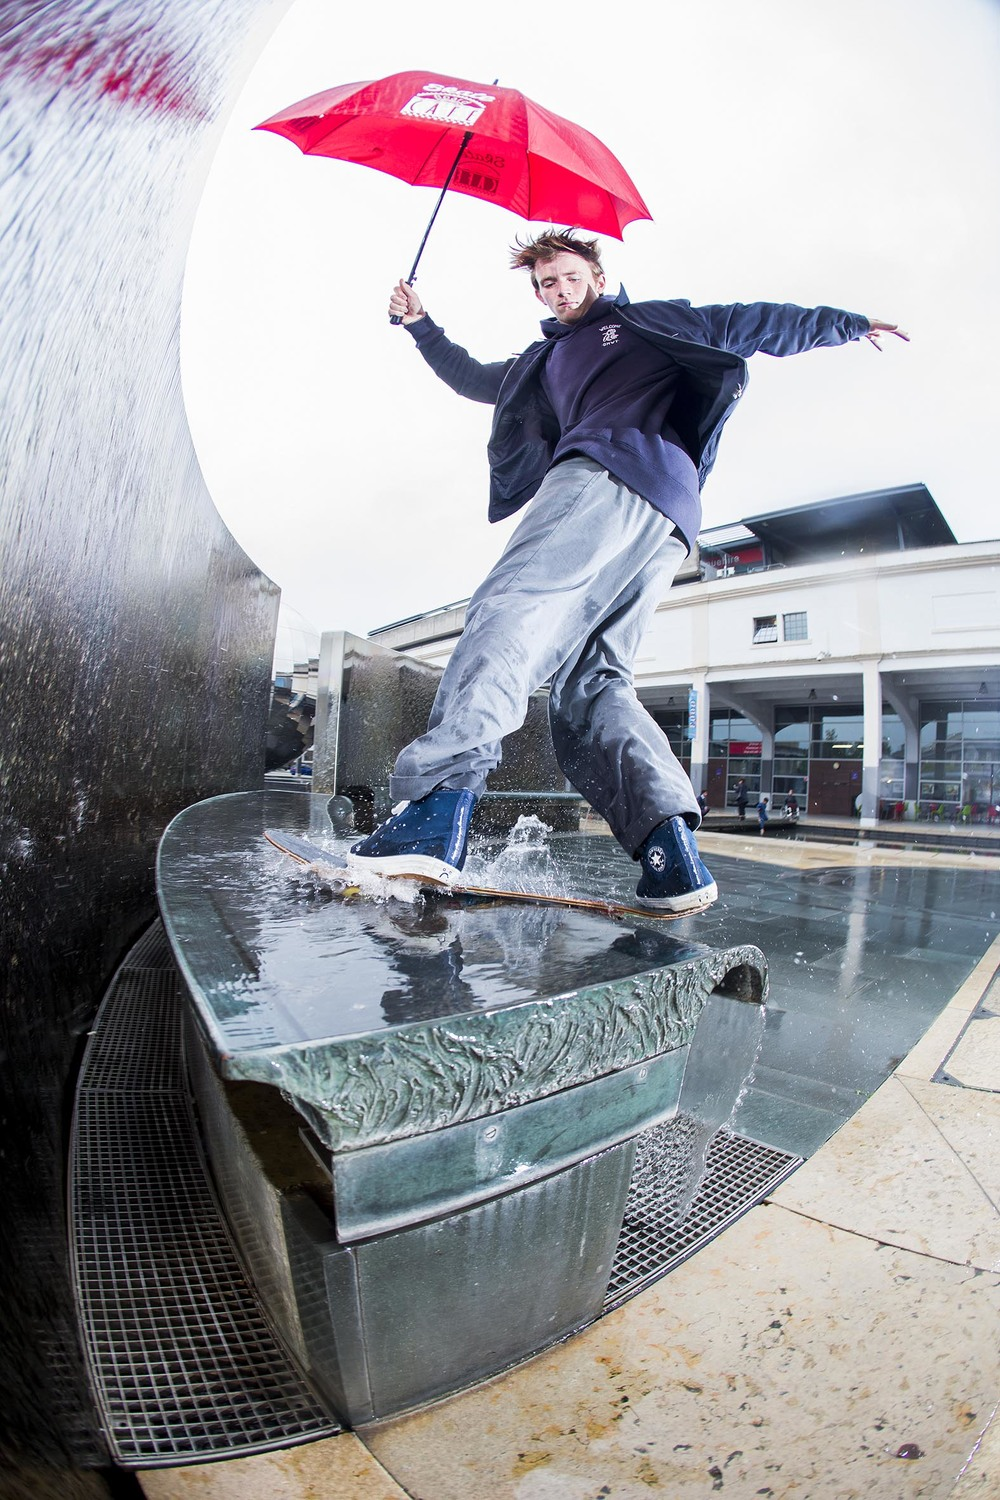 Mike Arnold - frontside boardslide